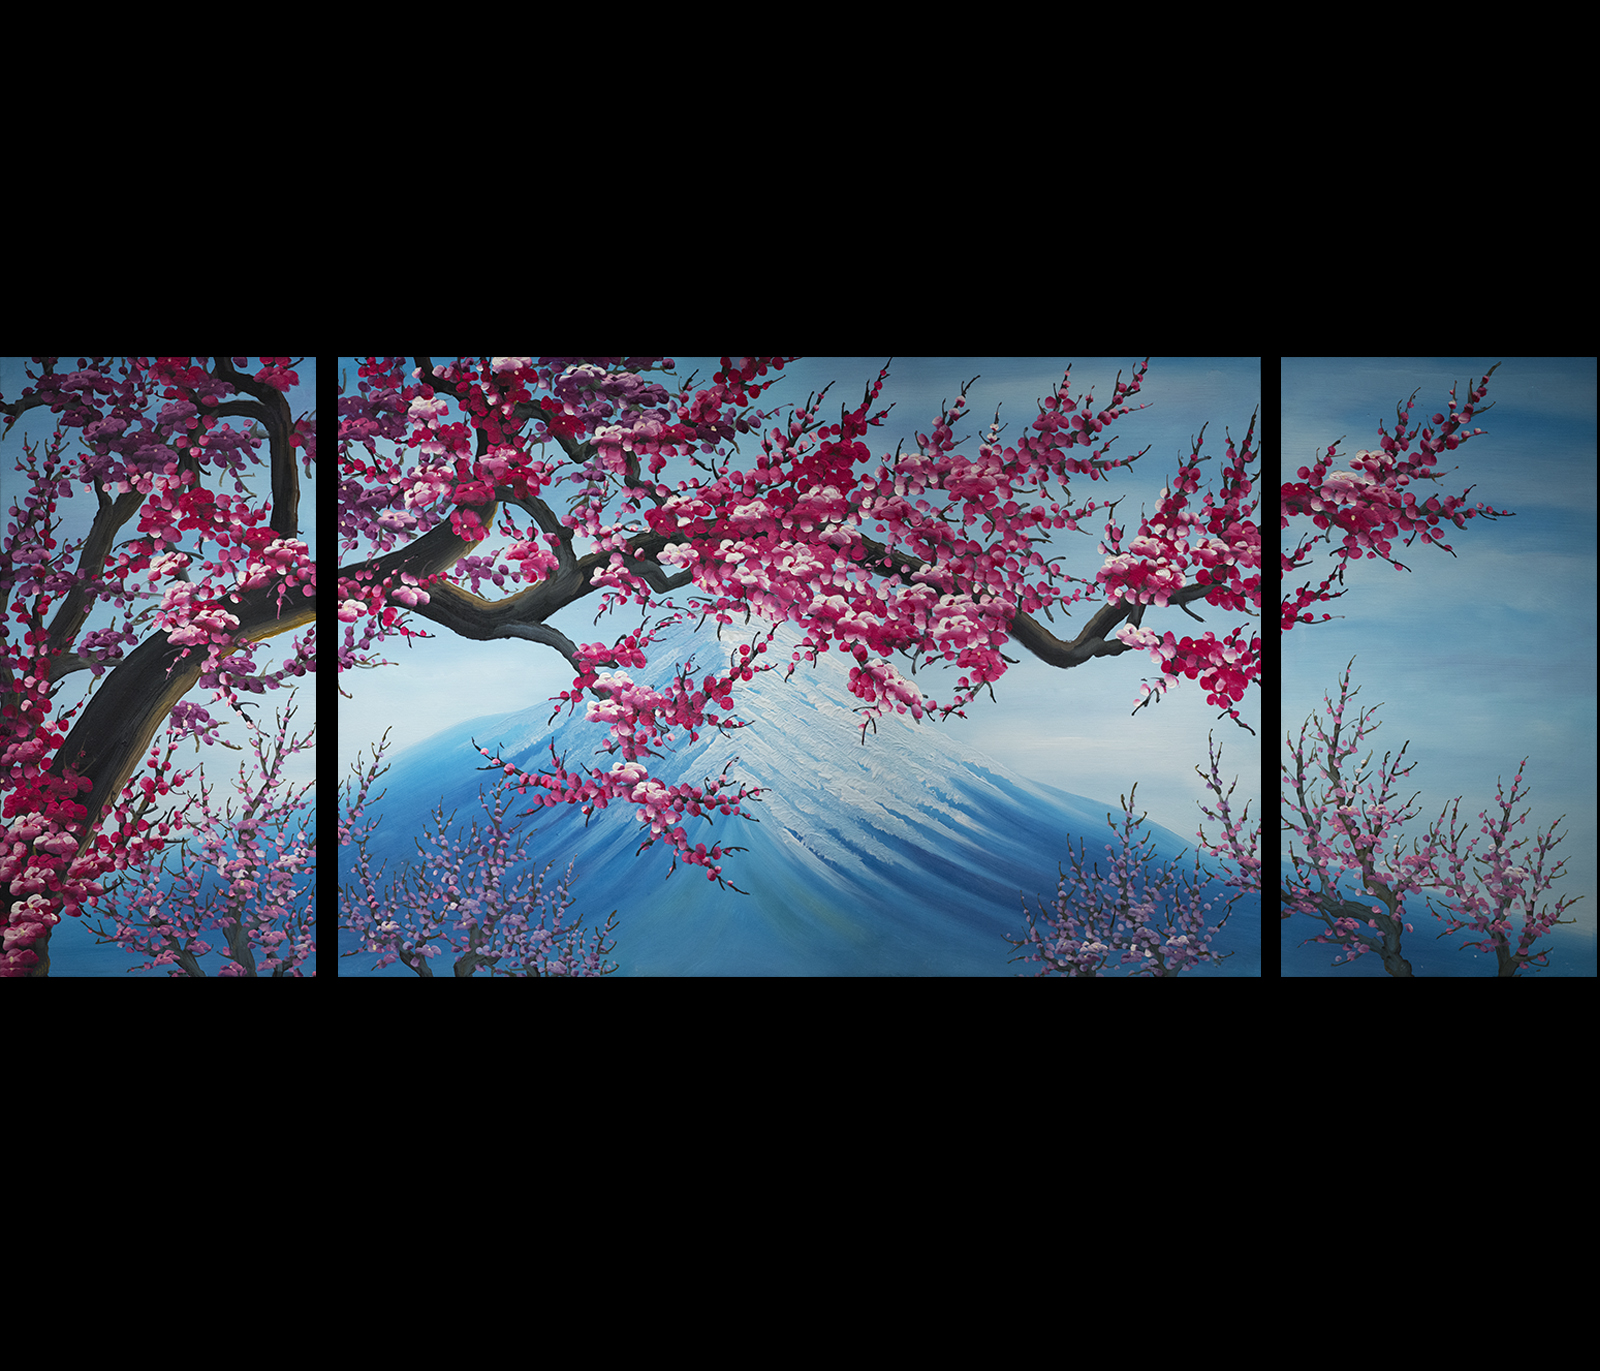 Alfa img Showing Cherry Blossom Paintings Canvas